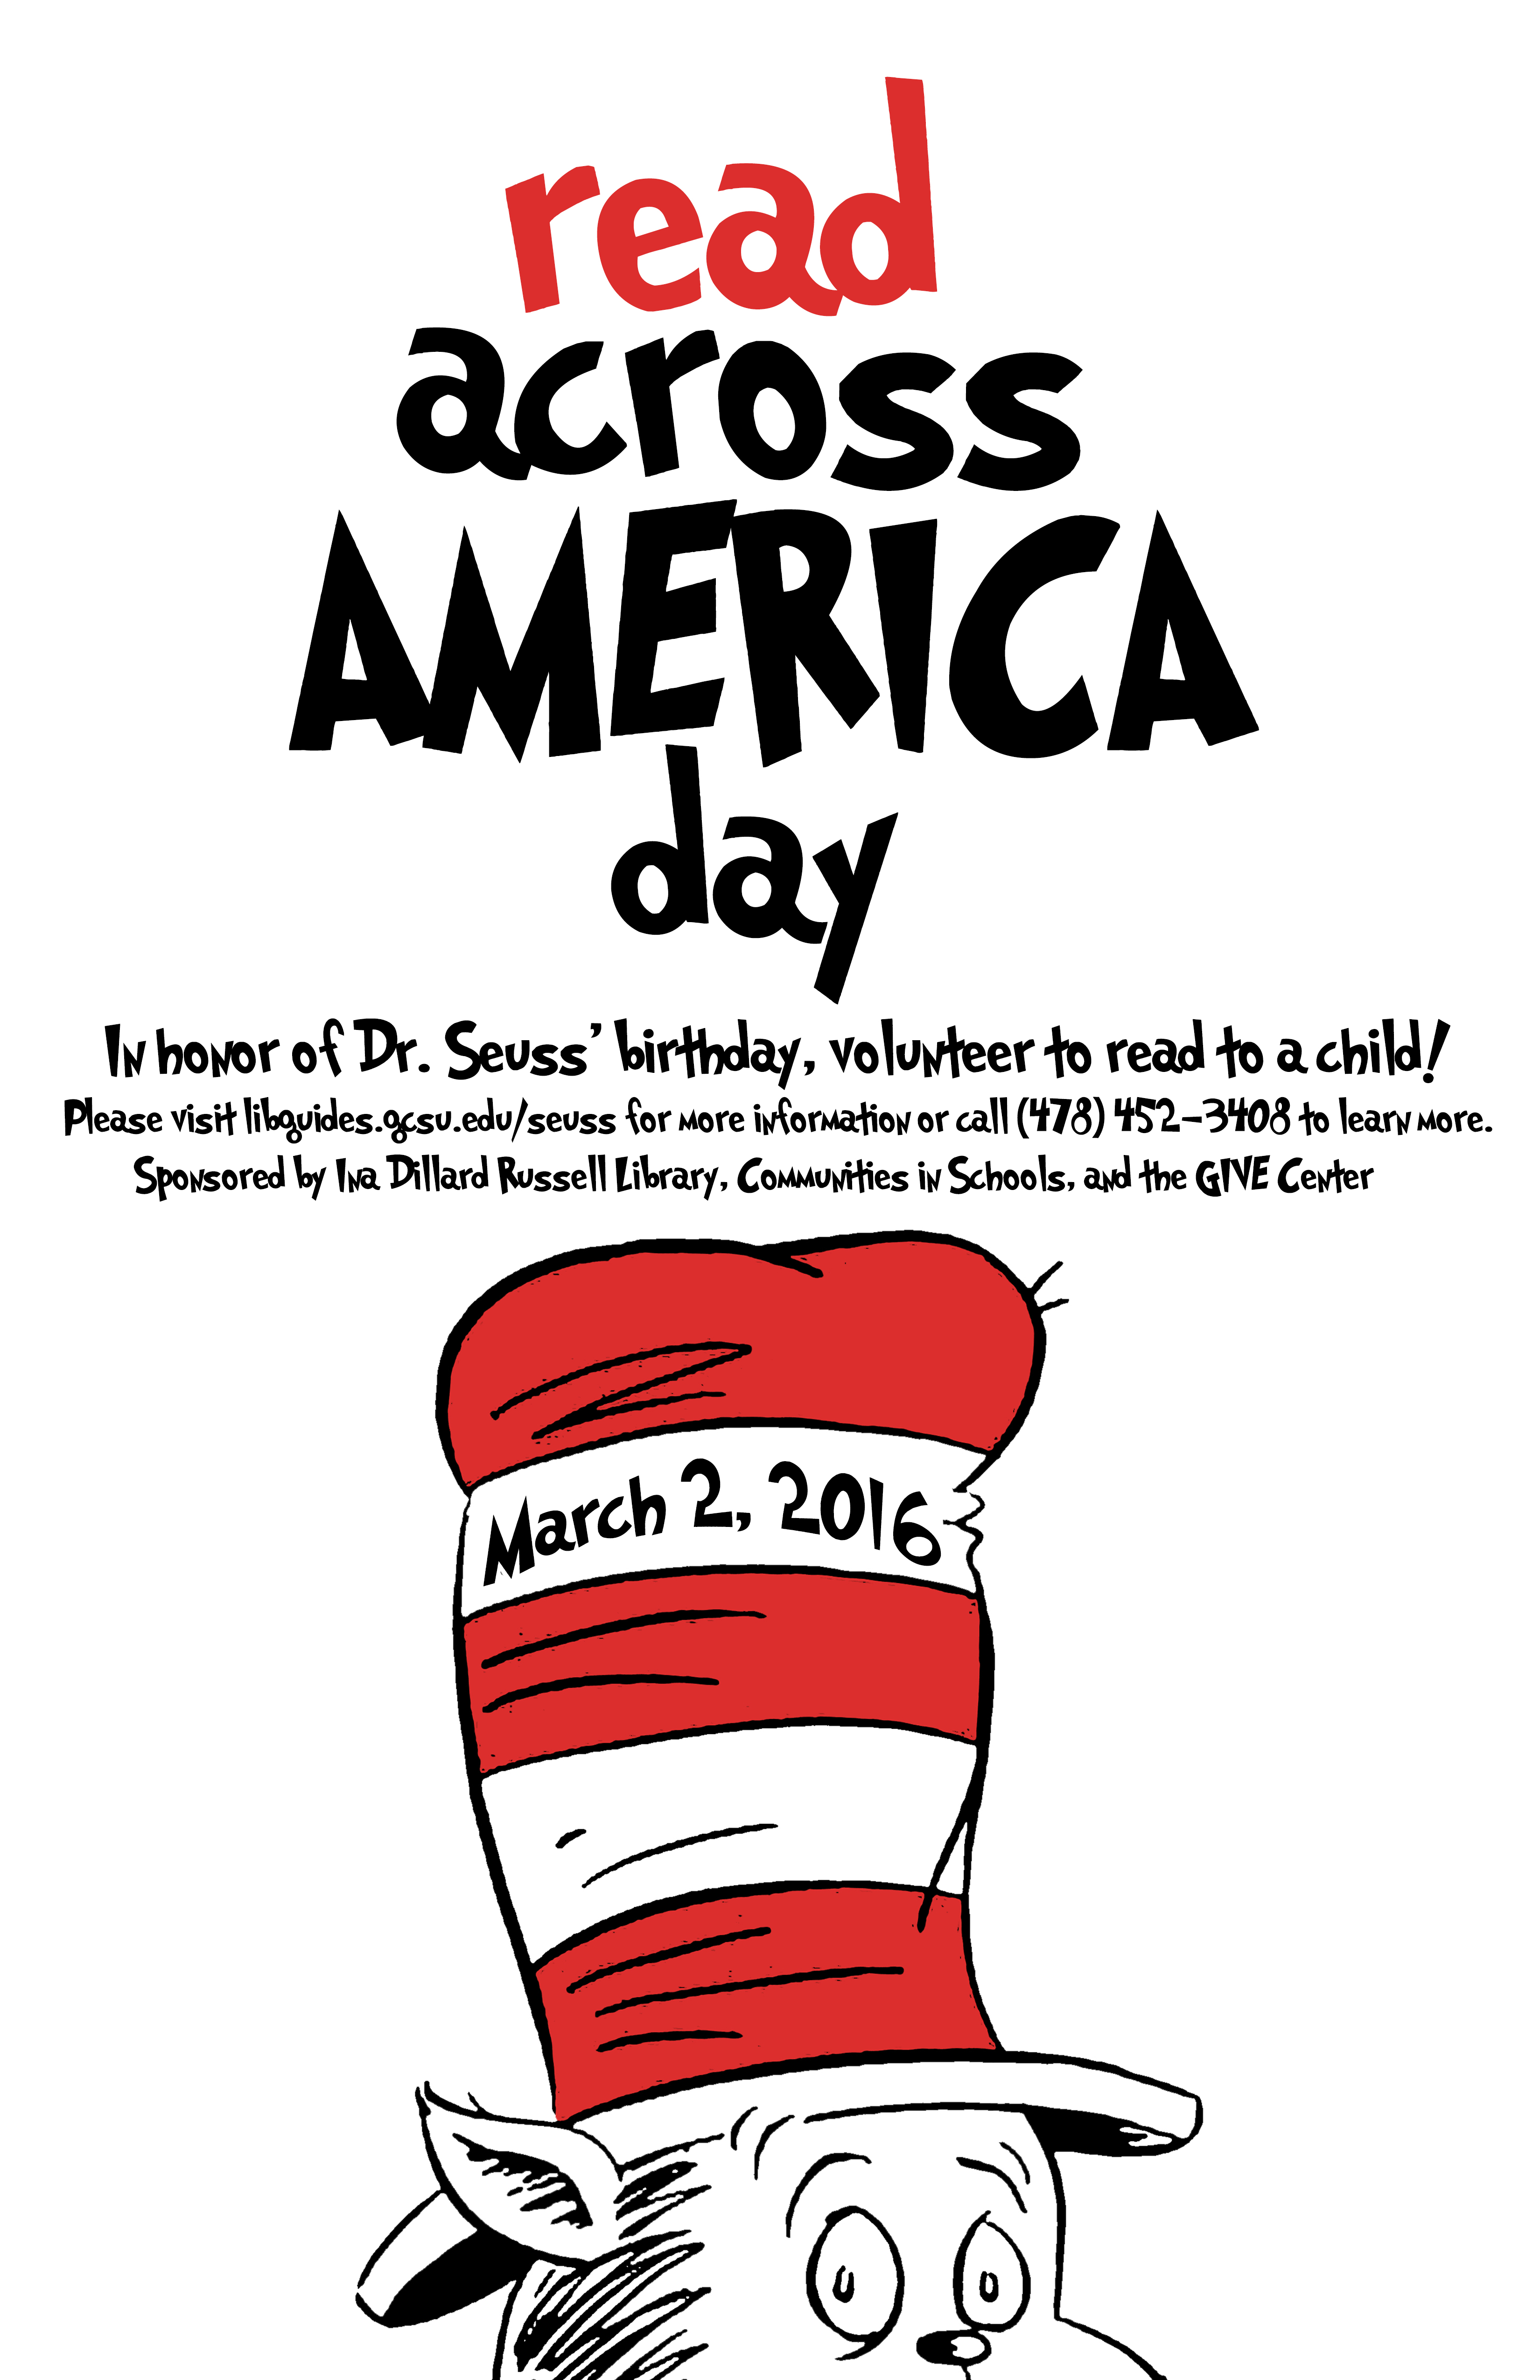 About Read Across America Day